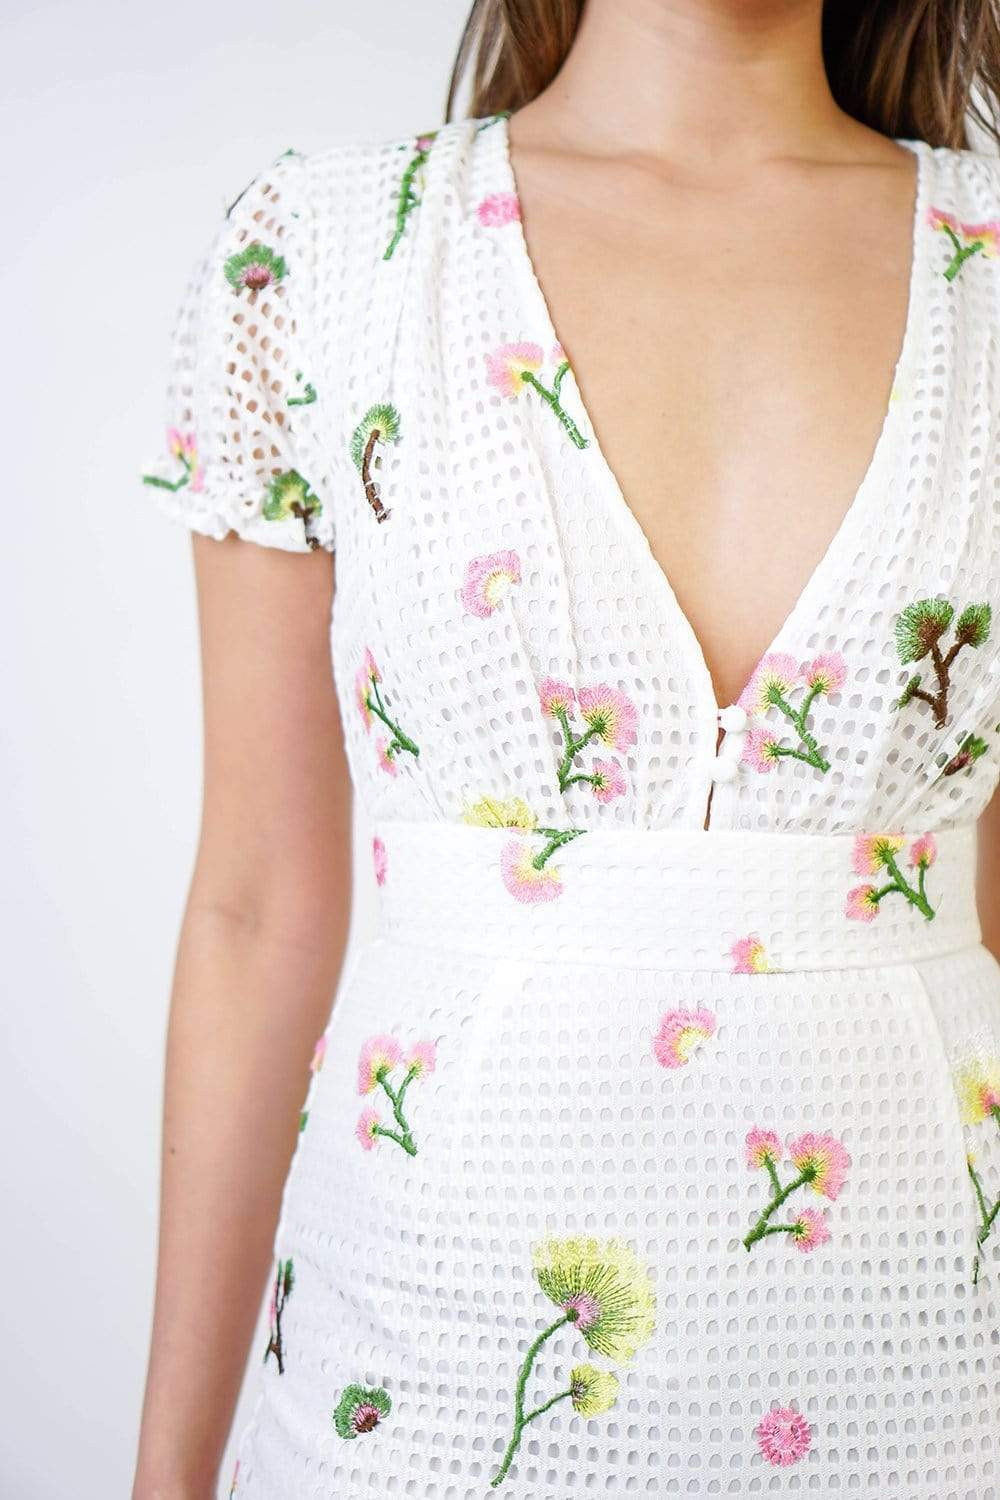 DRESS Sweet Floral Embroidered Dress - Chloe Dao